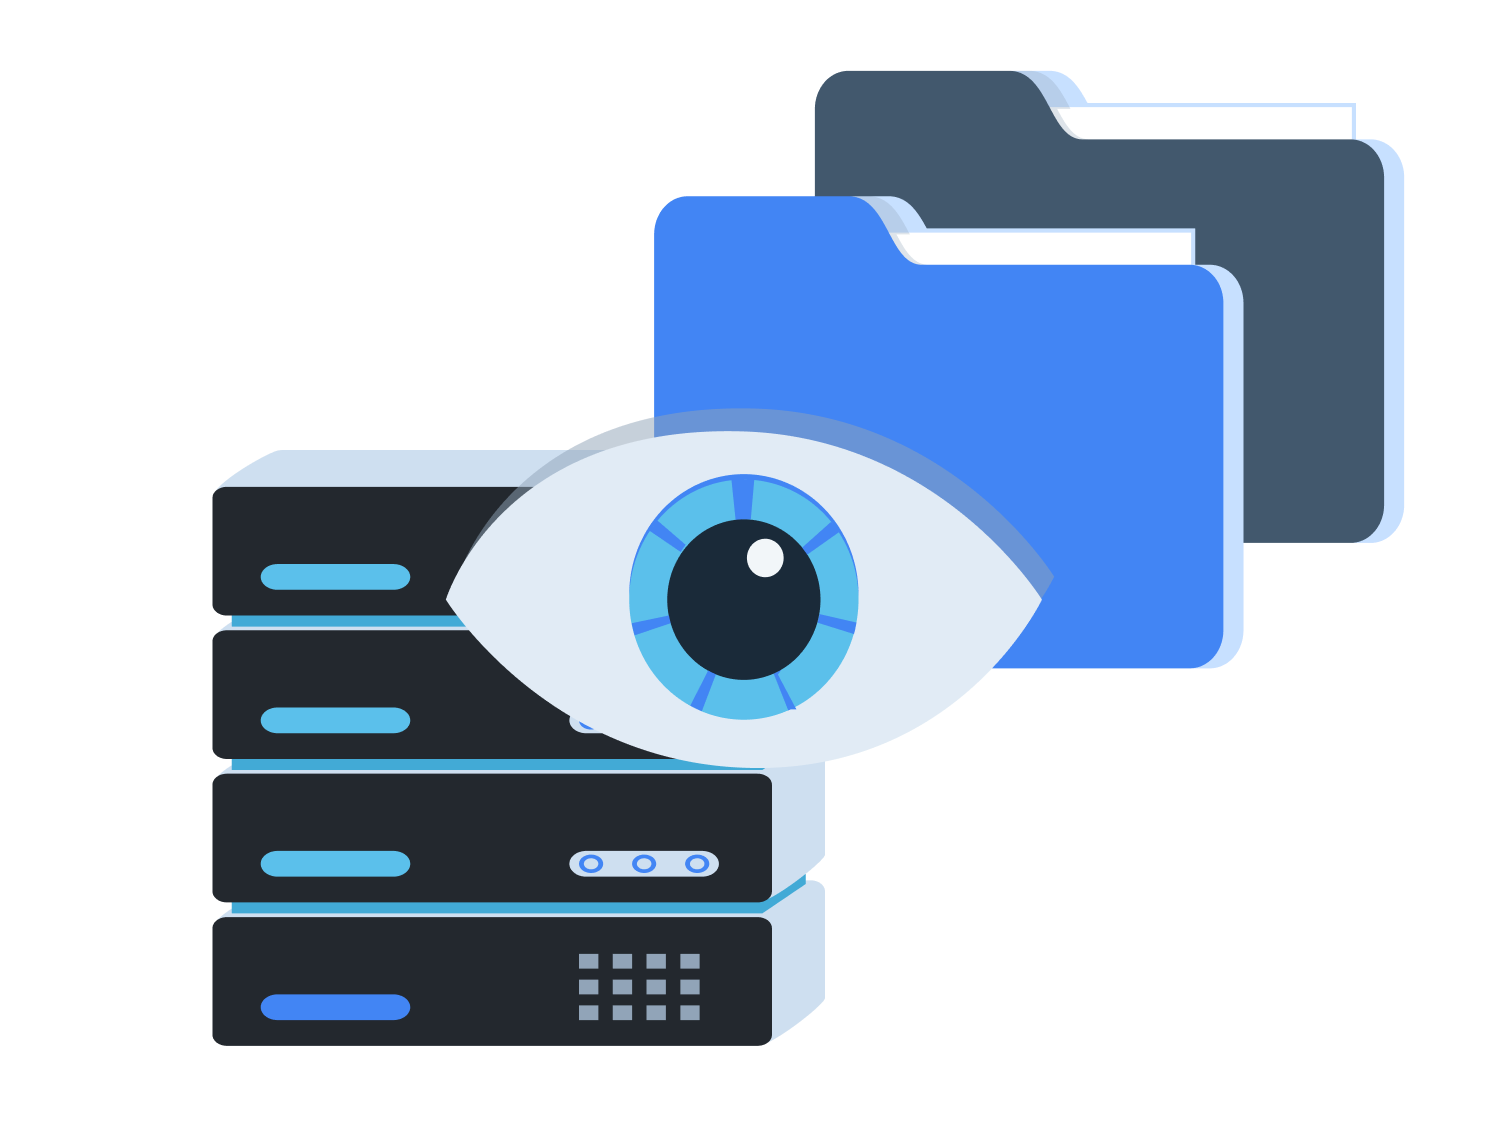 Layered image of a watchful eye in front of a database and files.